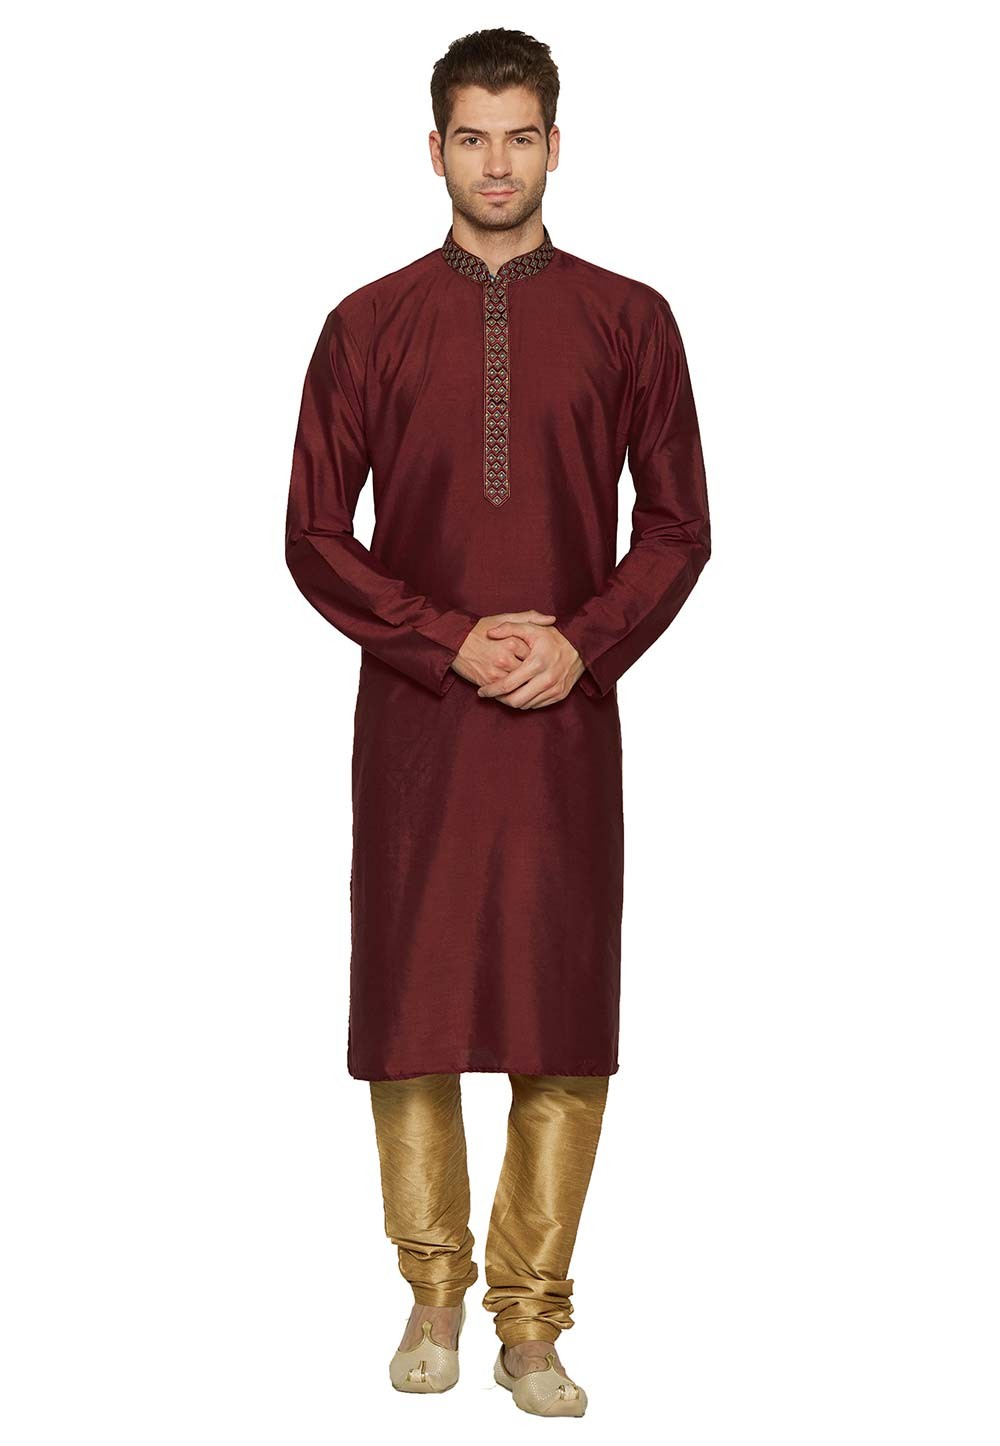 Indian: Buy Kurta Pyjama Online in Maroon Colour